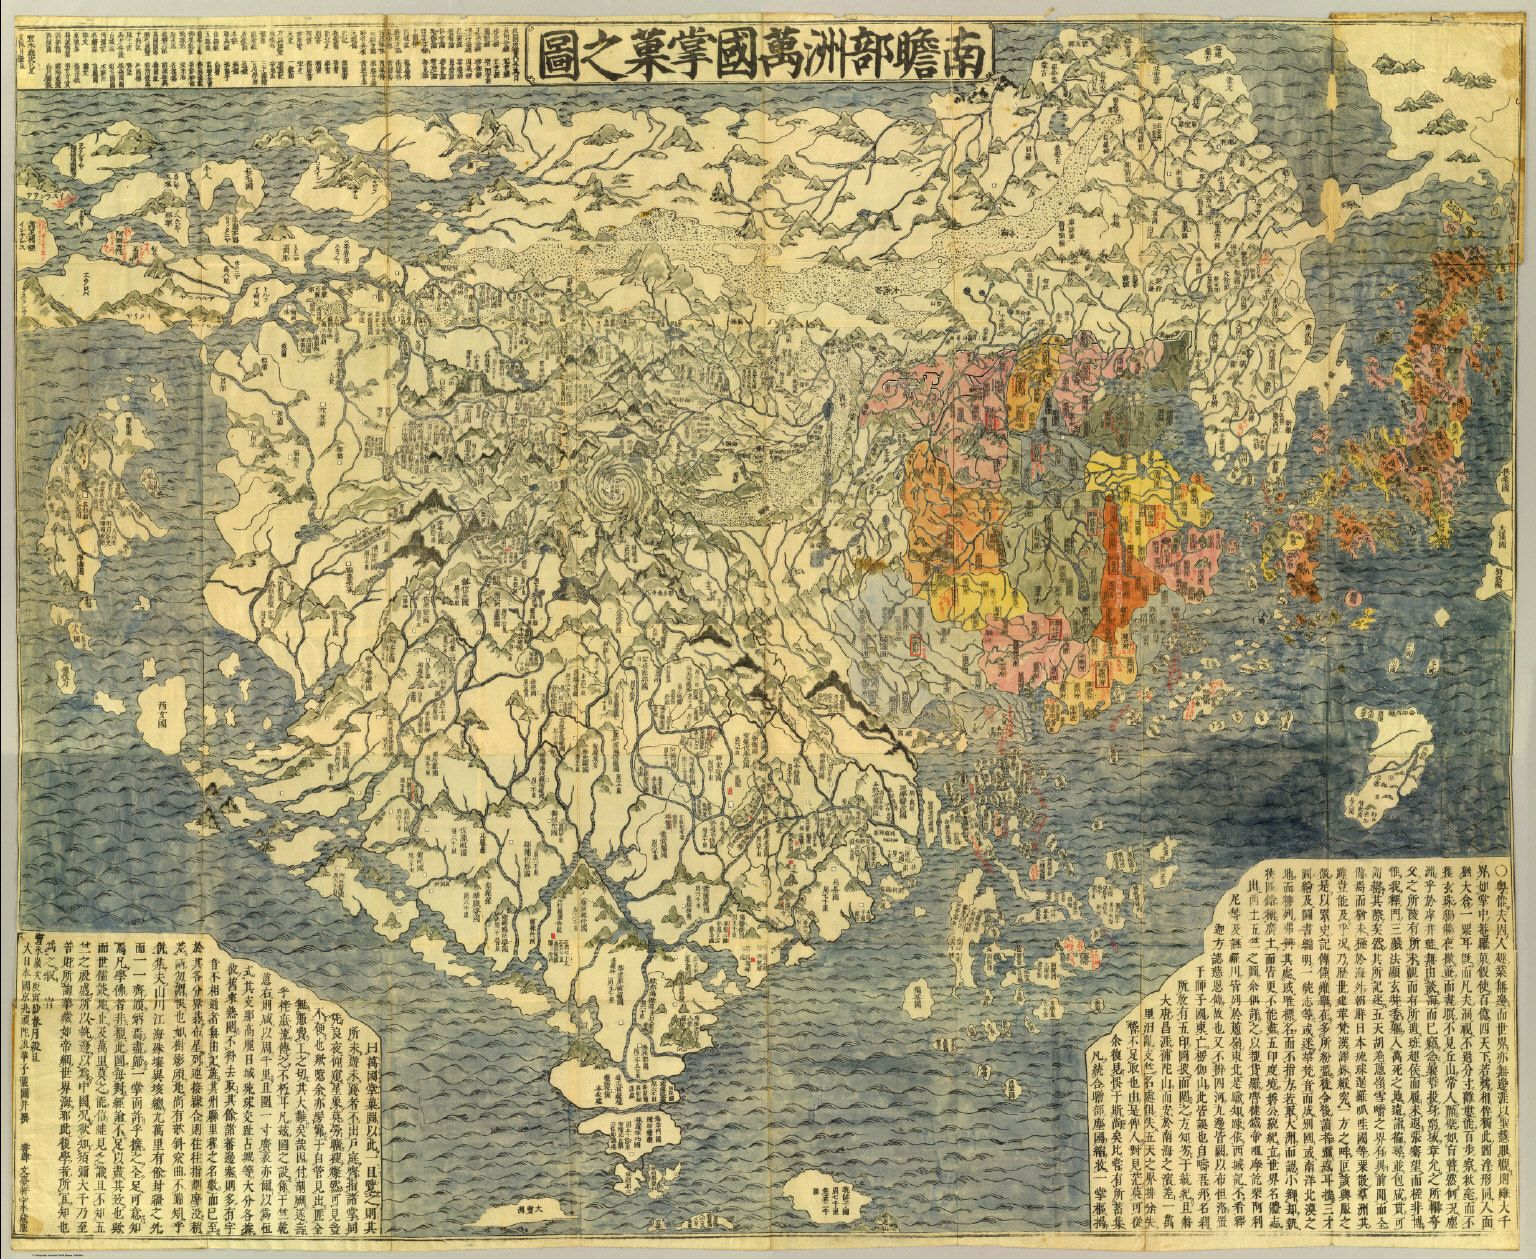 Shows the world based on buddhist literature from india and china the land of maps the first buddhist world map printed in japan and the prototype for all subsequent buddhist world maps printed in japan until the late gumiabroncs Image collections